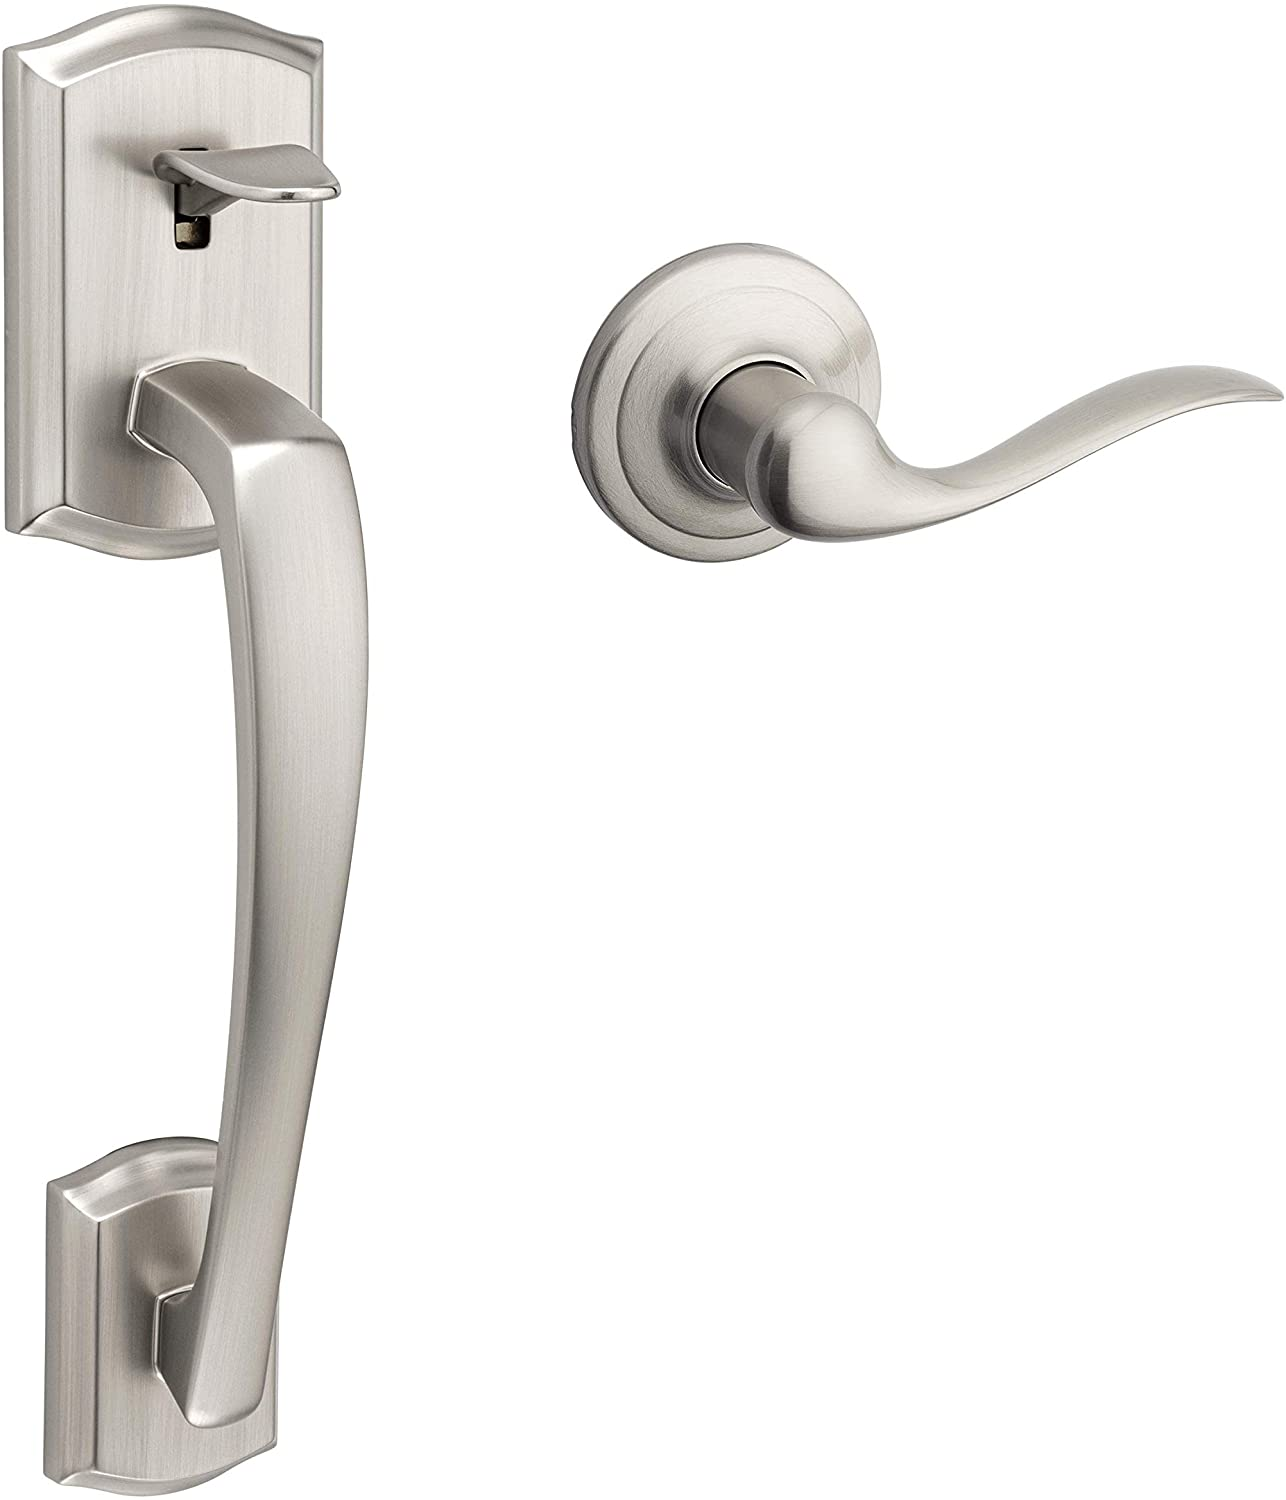 Kwikset 98150-013 Prescott Front Max 60% OFF Door Clearance SALE! Limited time! with Handle Tusti Interior